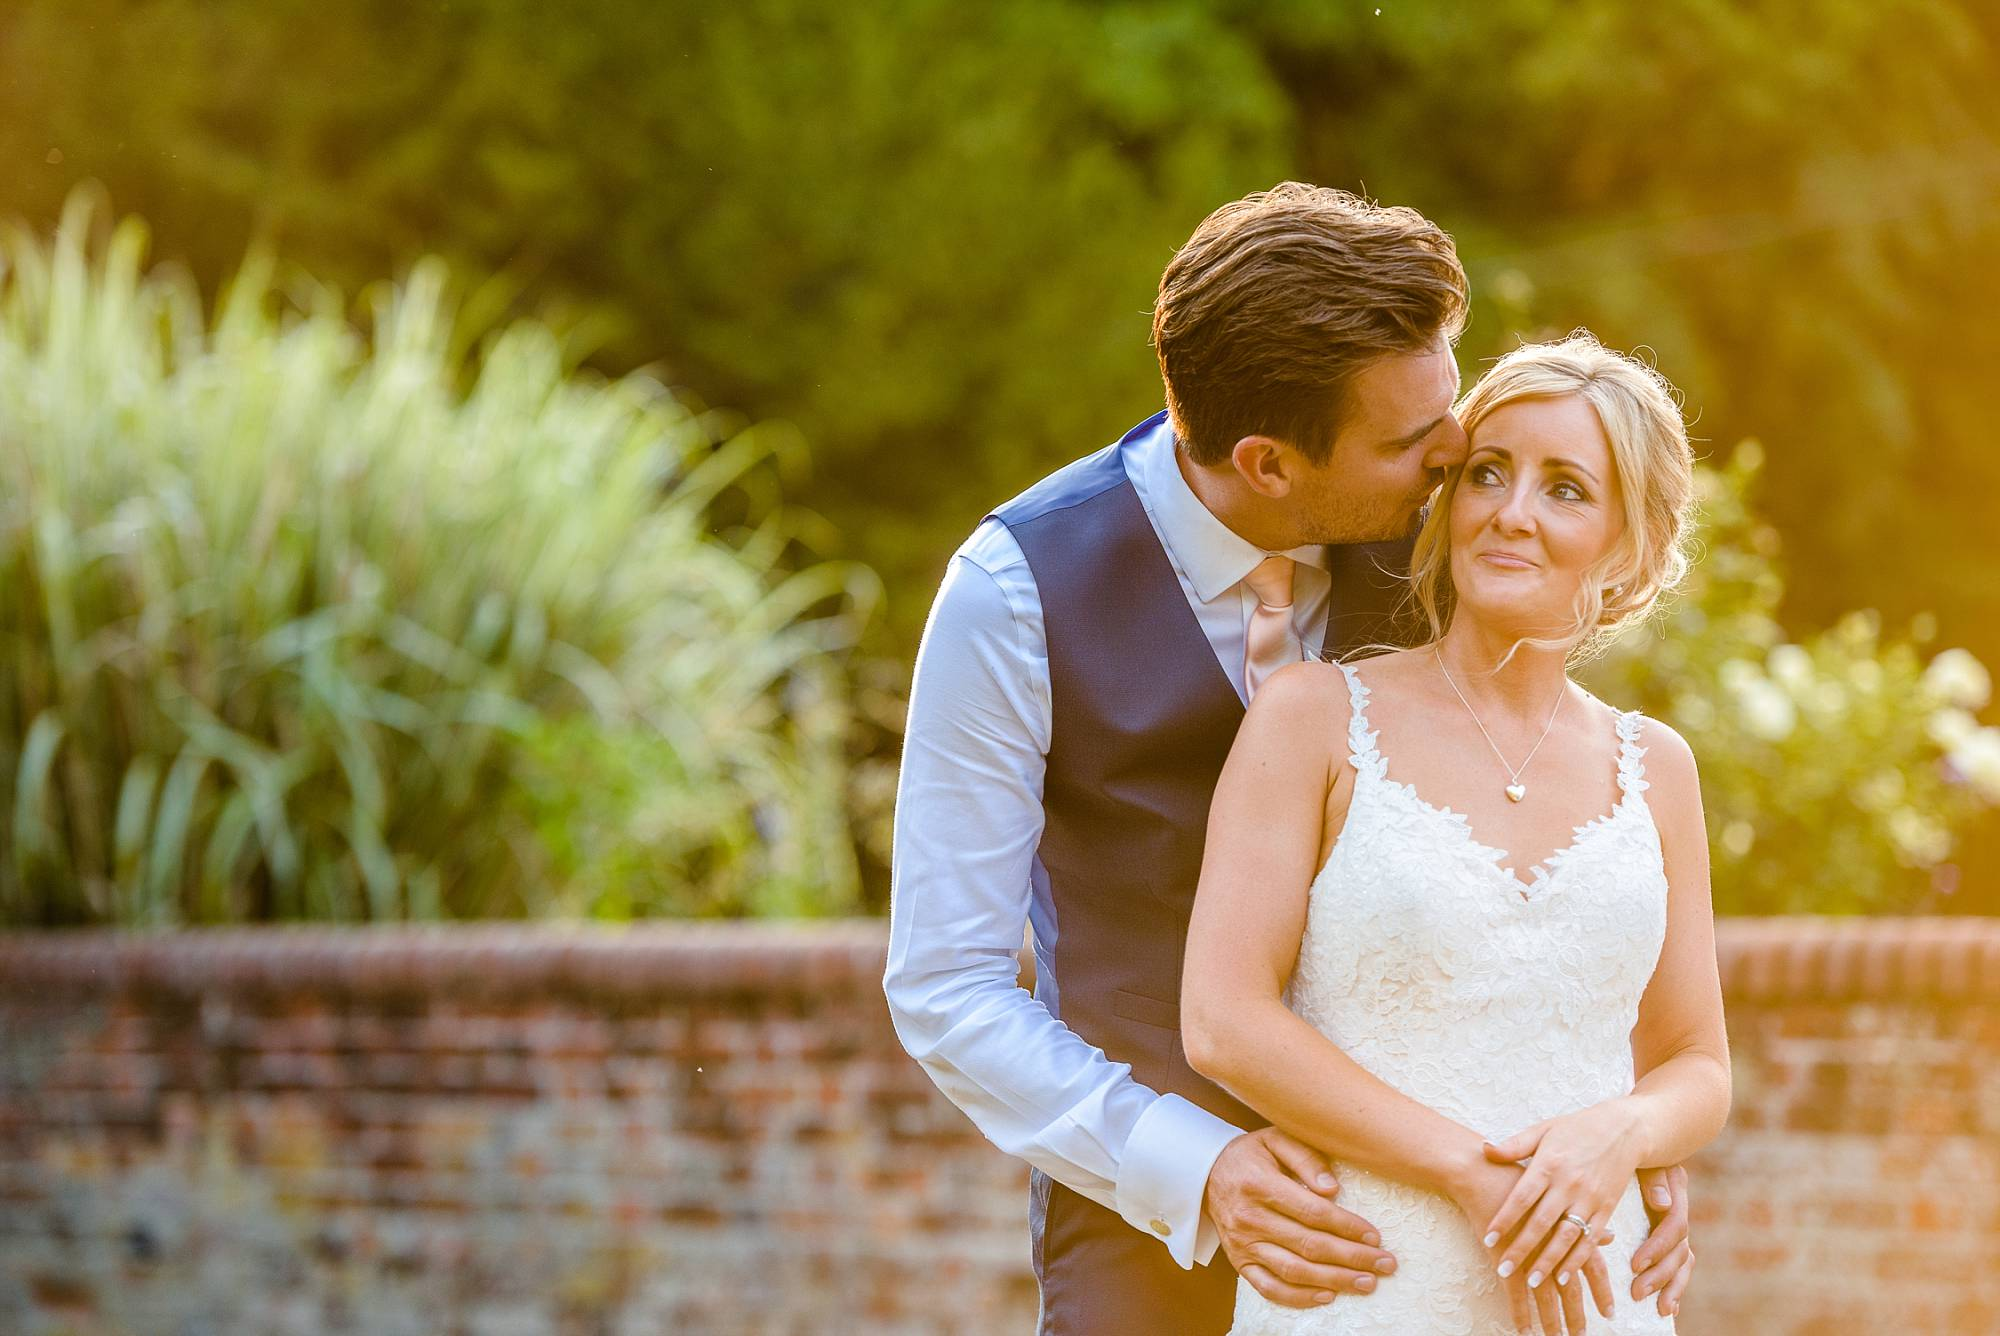 Houchins Essex Wedding Photographer_0088.jpg